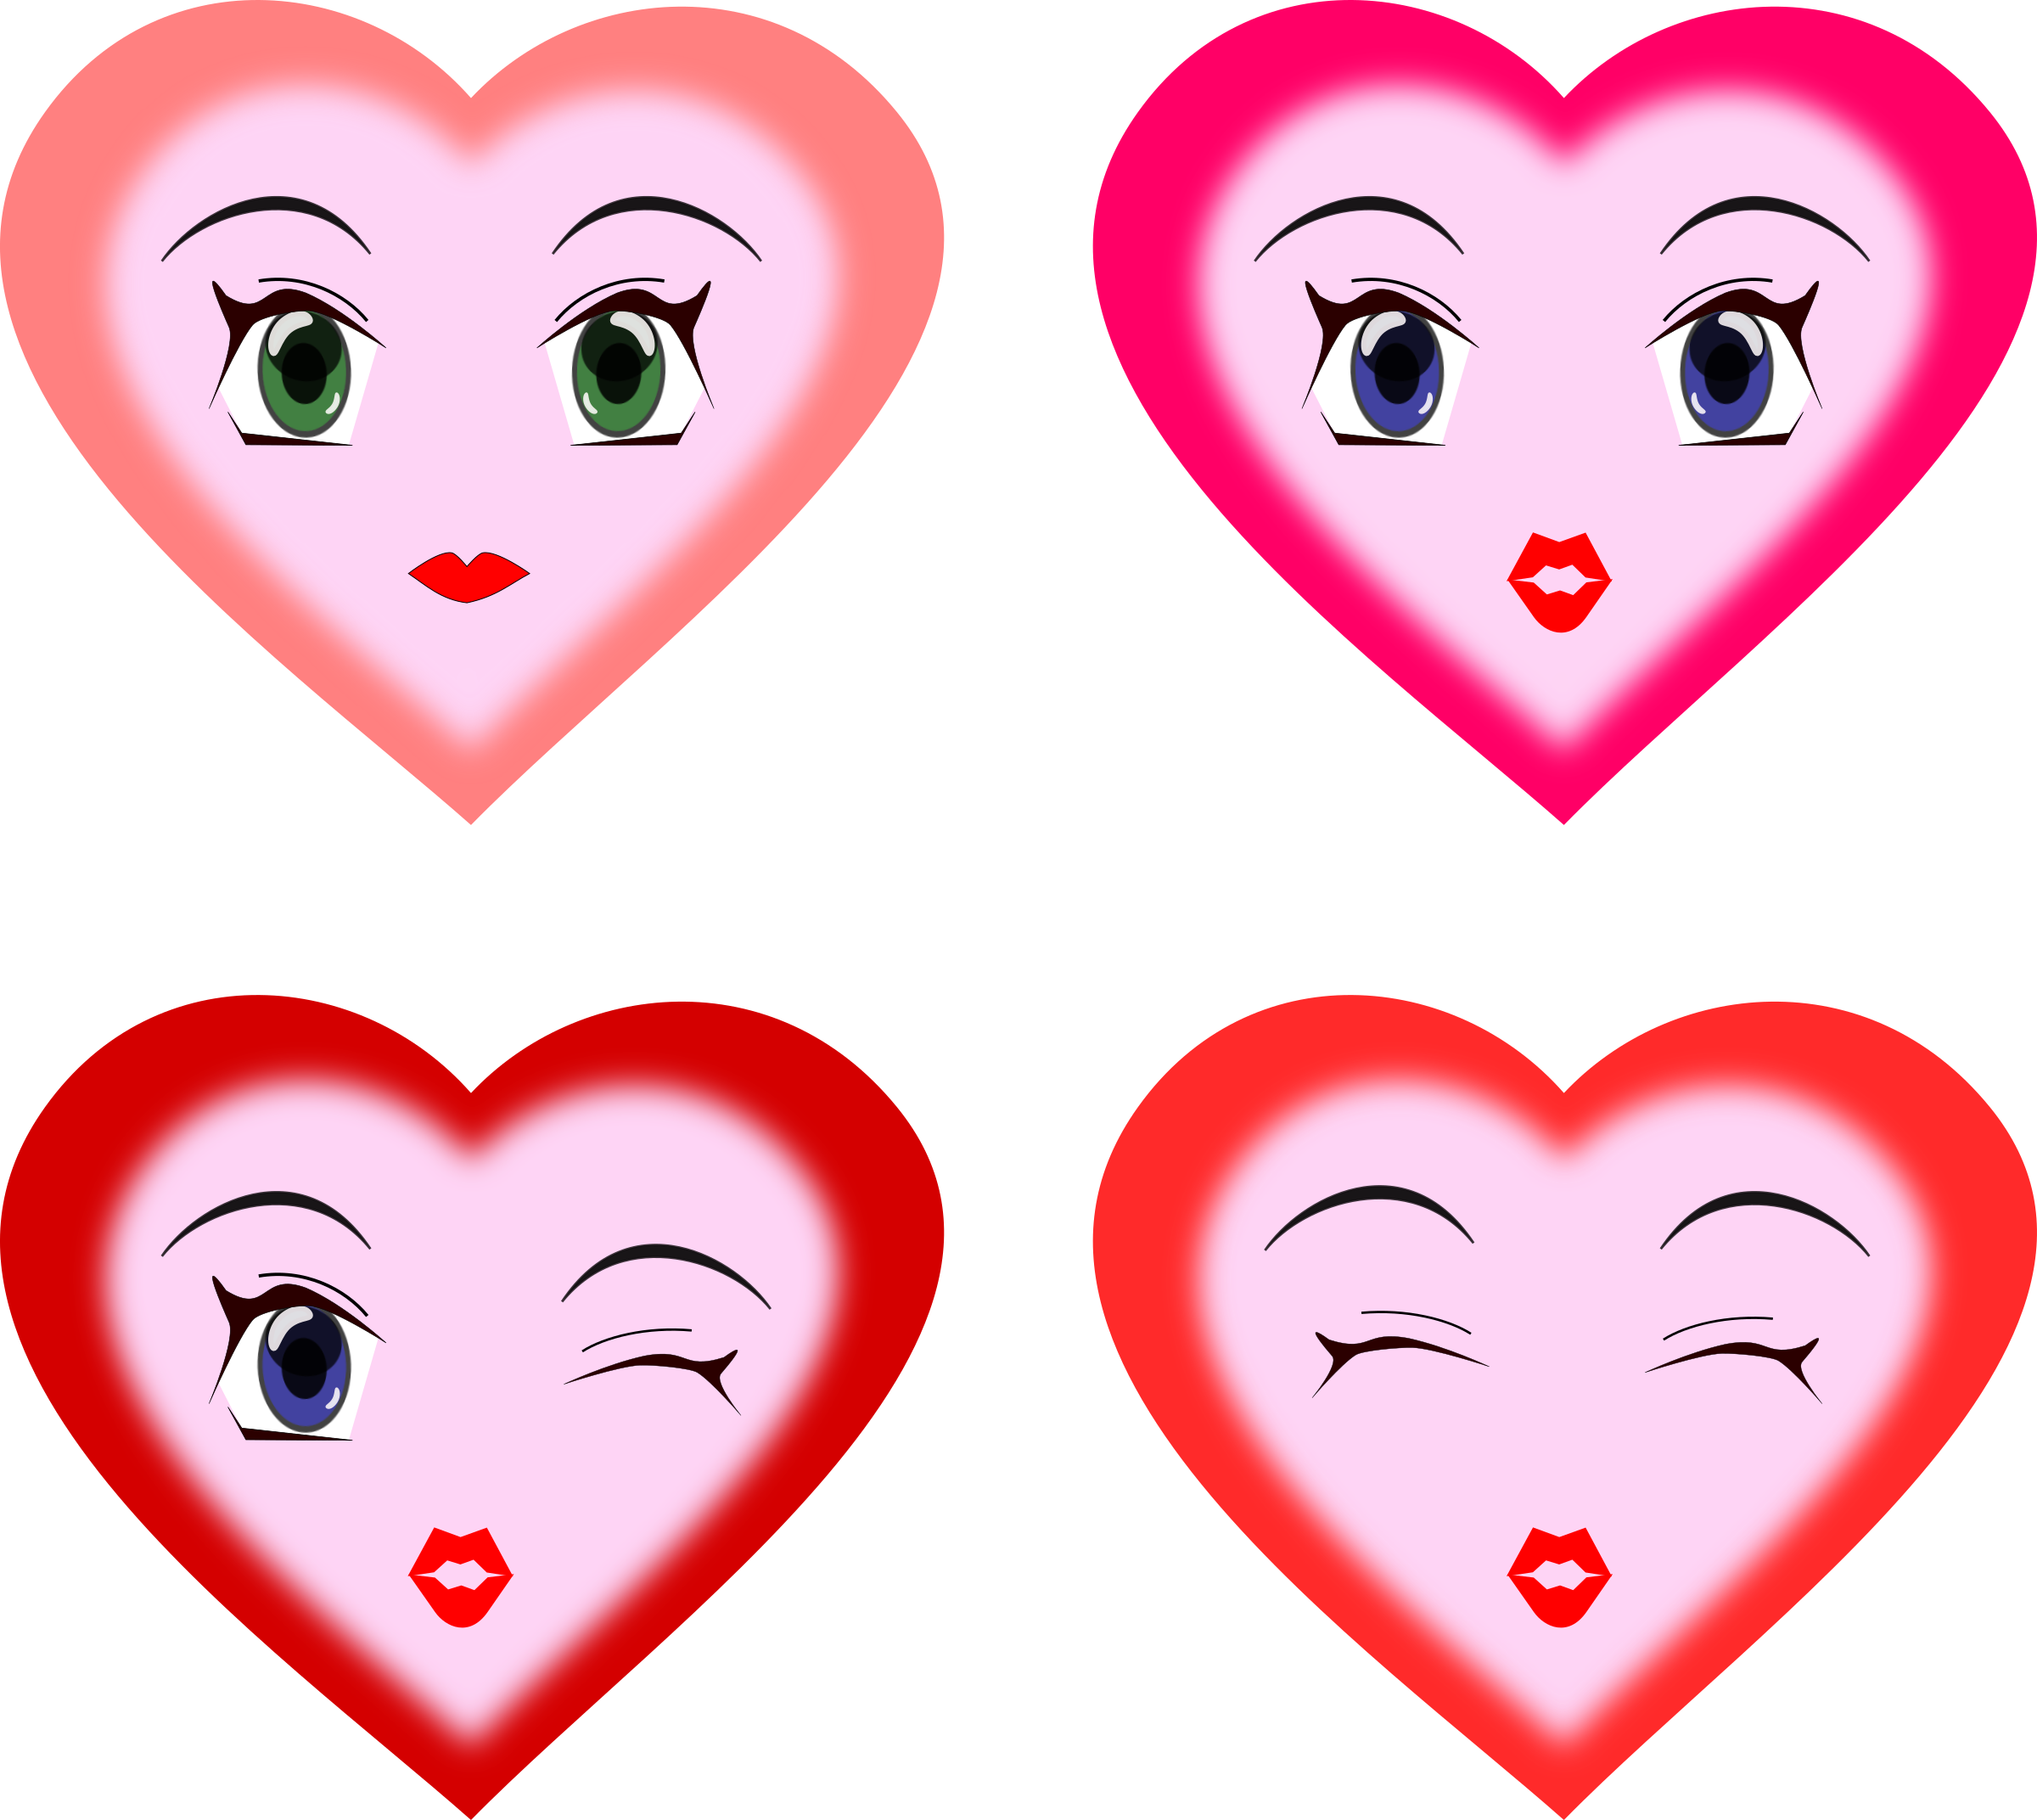 cartoon heart clipart at getdrawings com free for personal use rh getdrawings com animated valentine heart clipart